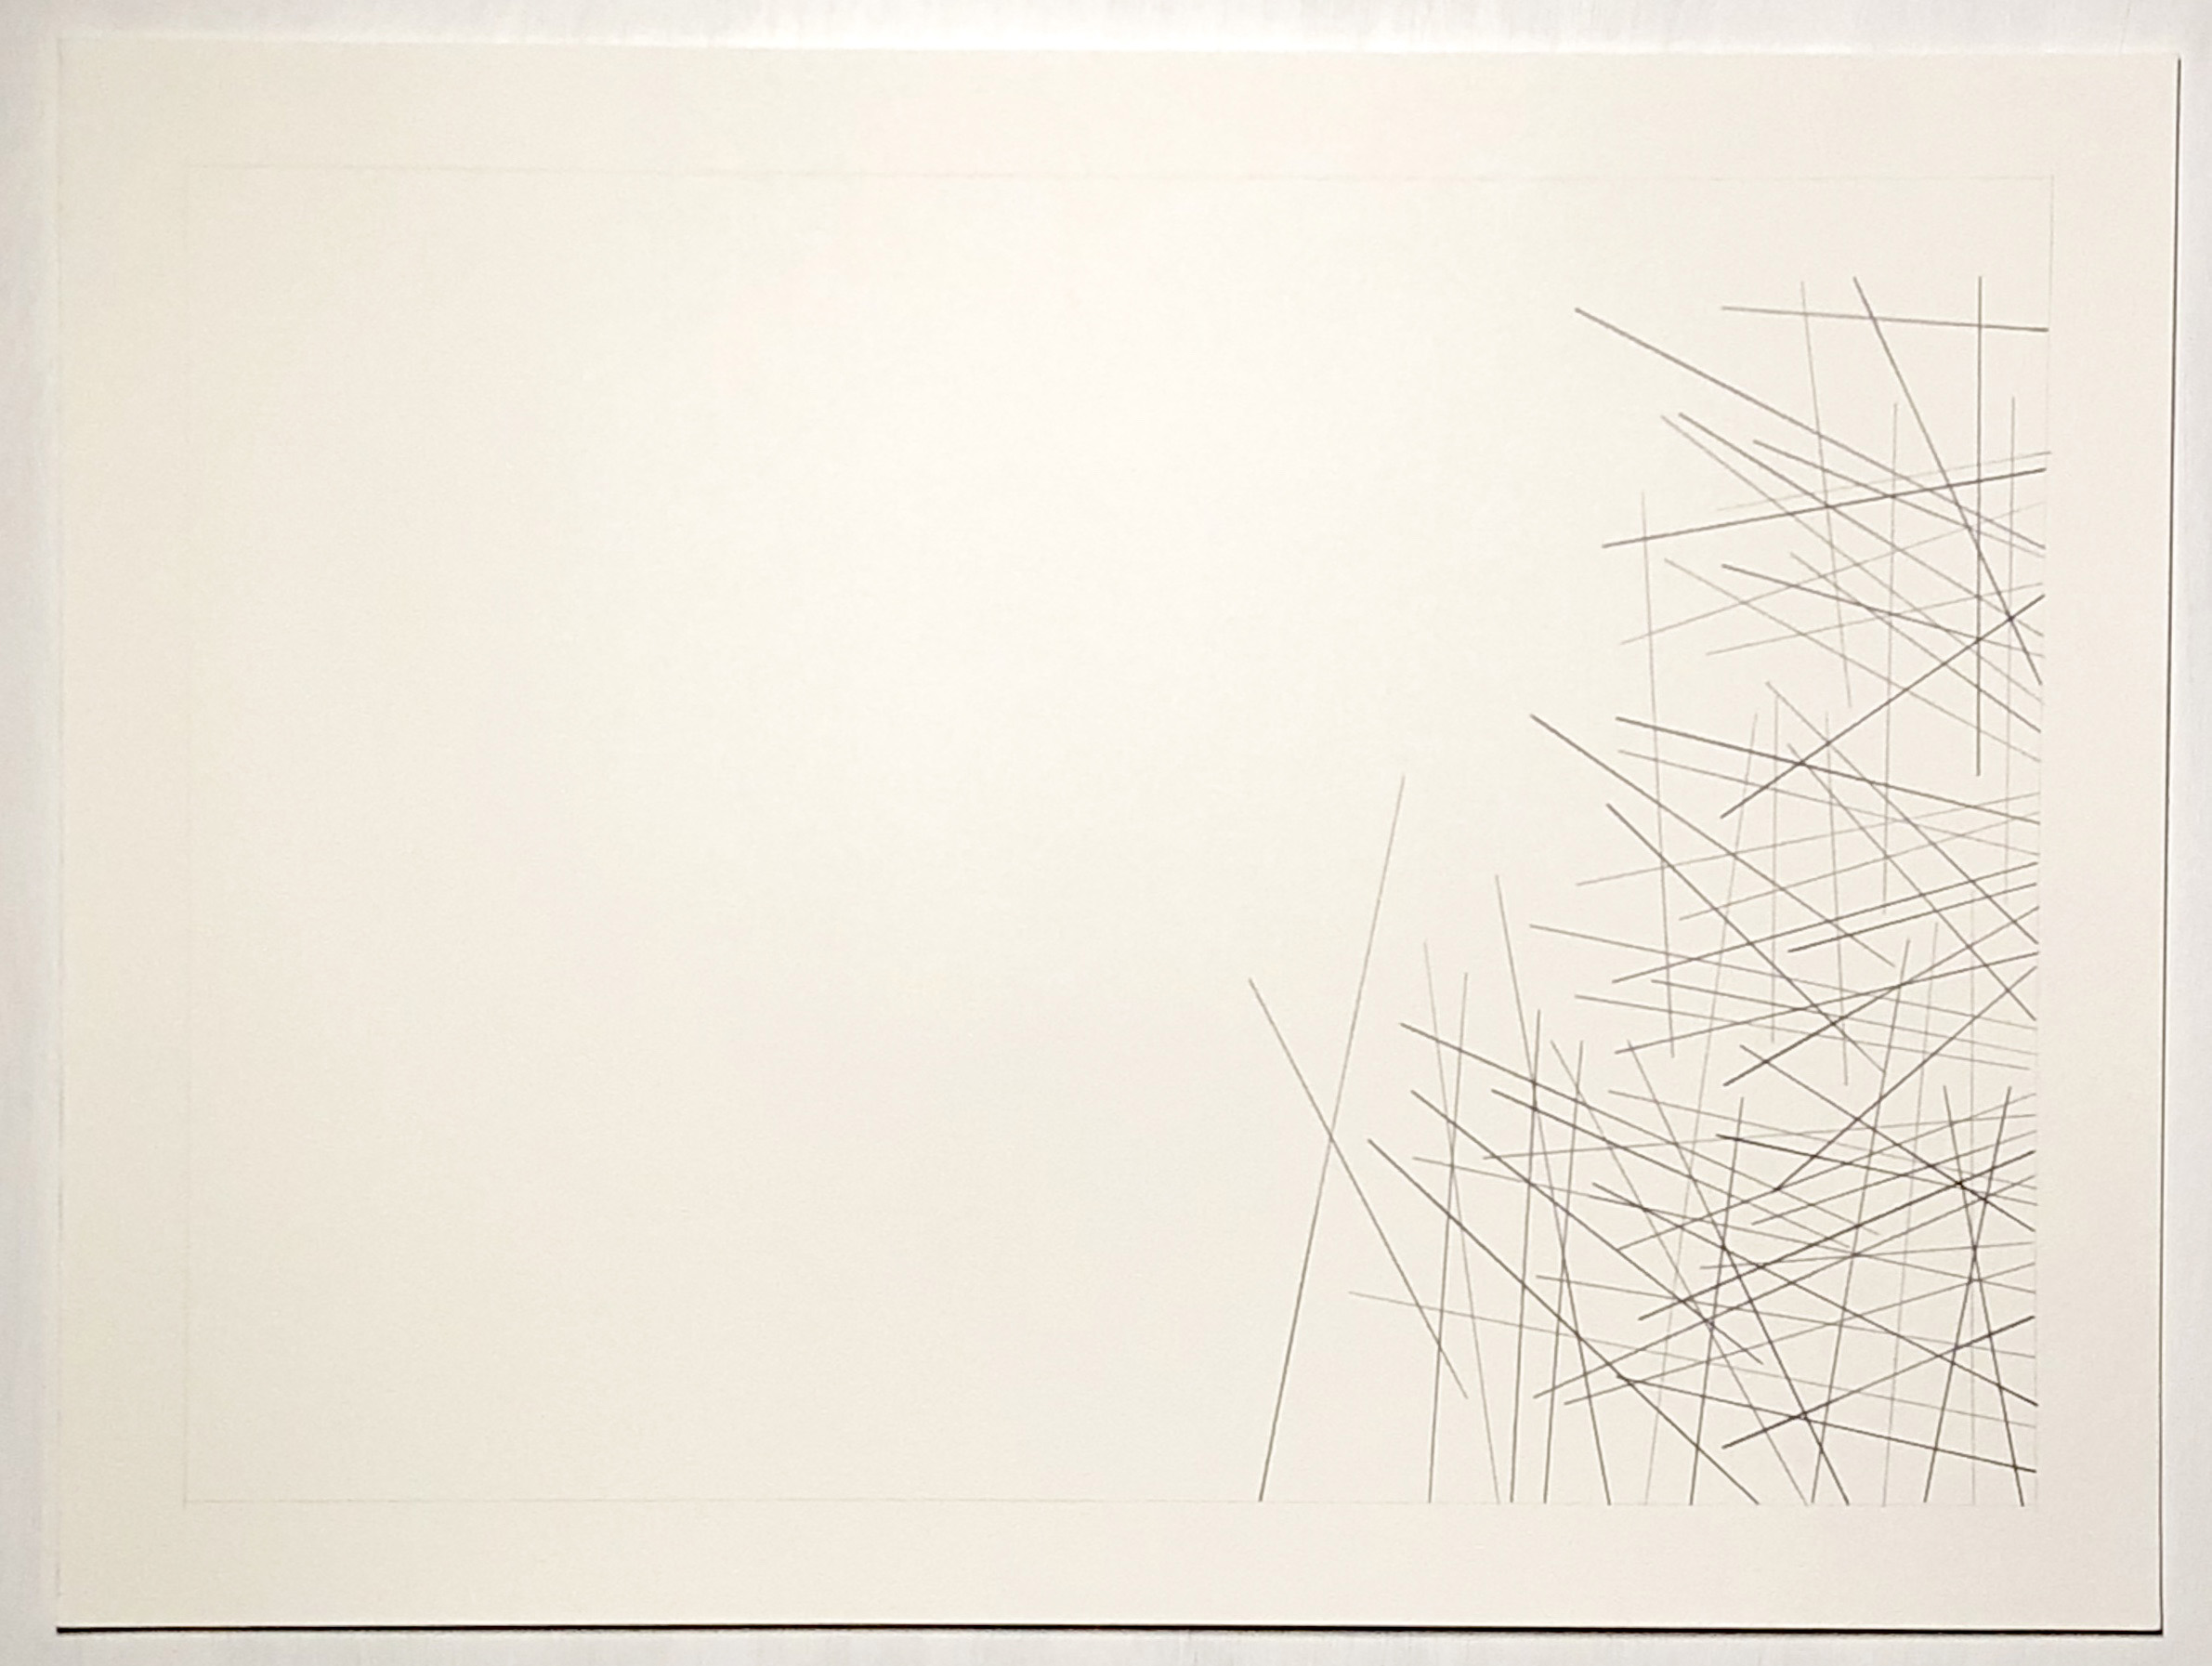 Pucallpa, Peru -8.3745, -74.5698,  2018  Graphite on paper  18H x 24W inches unframed  21.75H x 27.75W inches framed